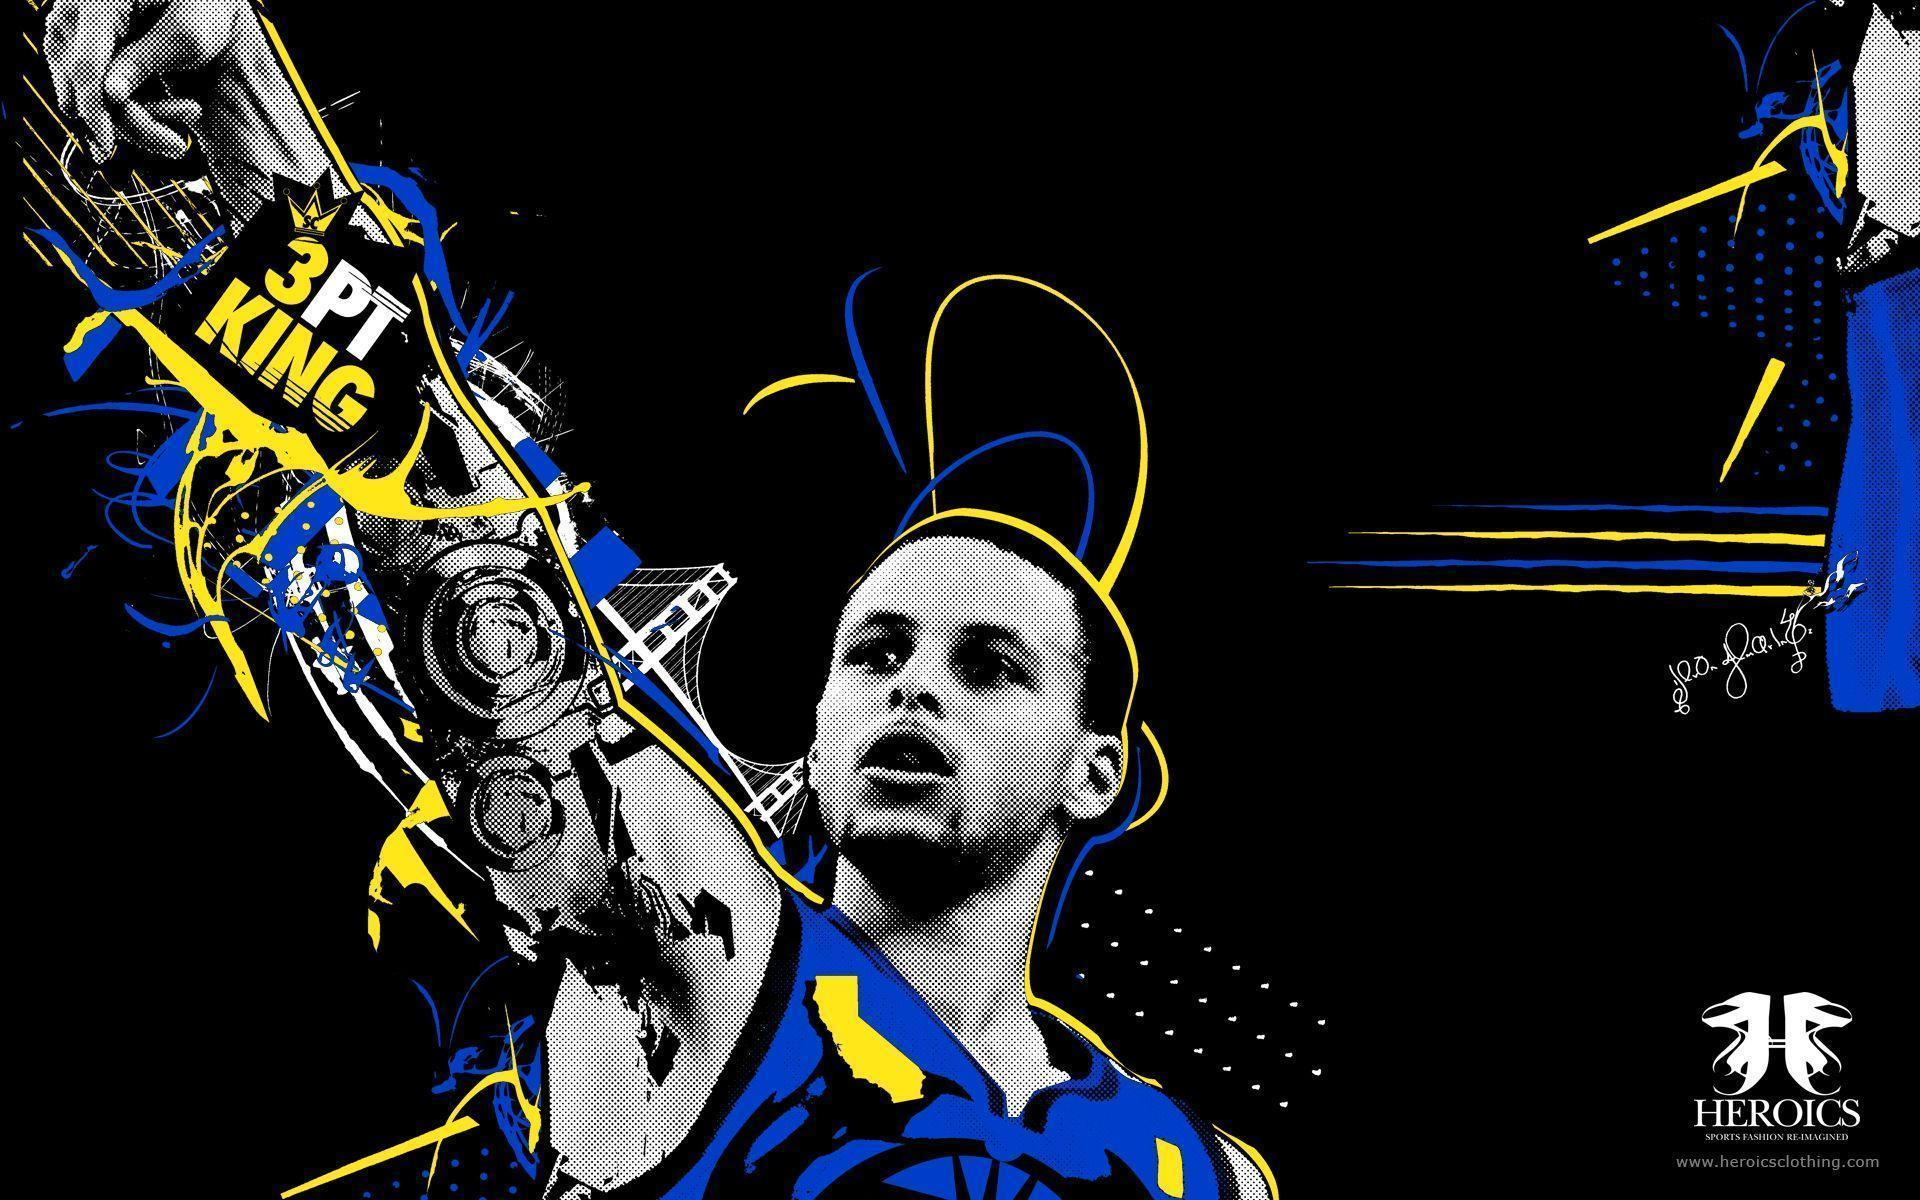 Stephen Curry Wallpaper HD free download | PixelsTalk.Net